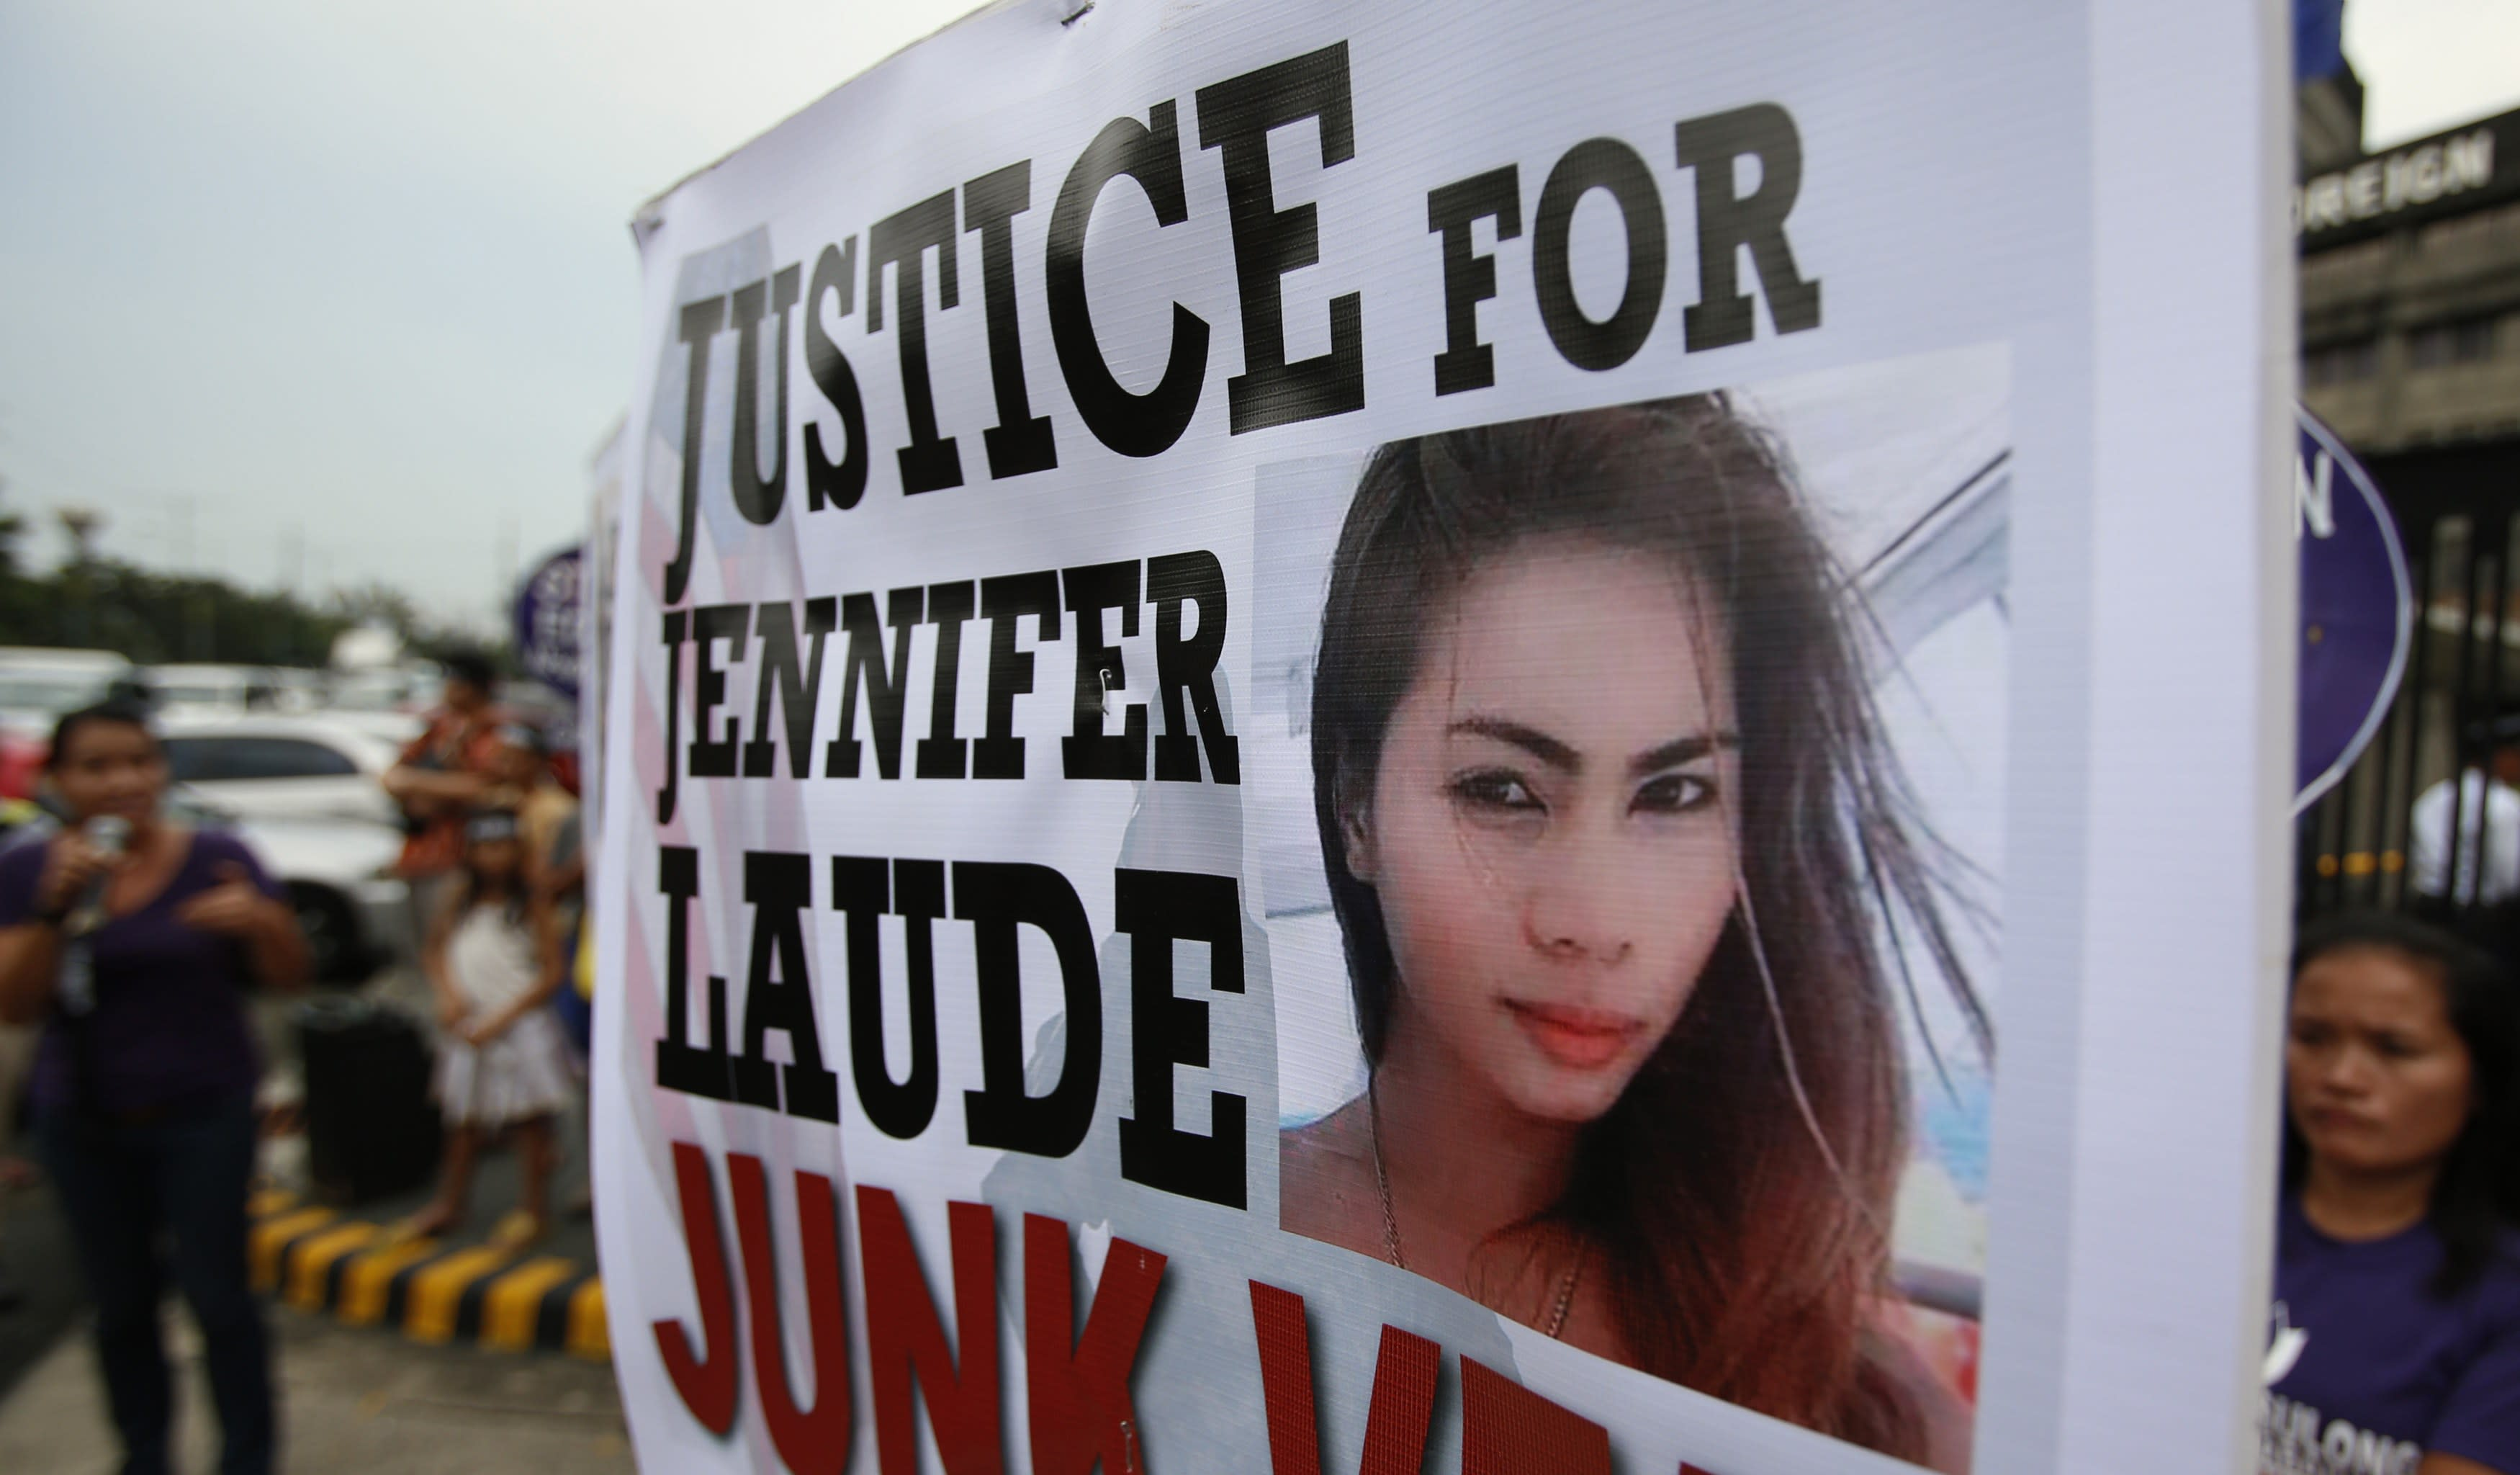 Protesters display a placard with a picture of slain 26-year-old Filipino transgender Jennifer Laude, during a rally outside the Department of Foreign Affairs in Manila October 15, 2014. The United States will keep custody of a Marine suspected in the murder of Jennifer Laude, whom he met in a bar, the head of the Philippine military said on Tuesday, and U.S. officials said a number of U.S. warships would remain in the country. REUTERS/Erik De Castro (PHILIPPINES - Tags: CRIME LAW POLITICS MILITARY)